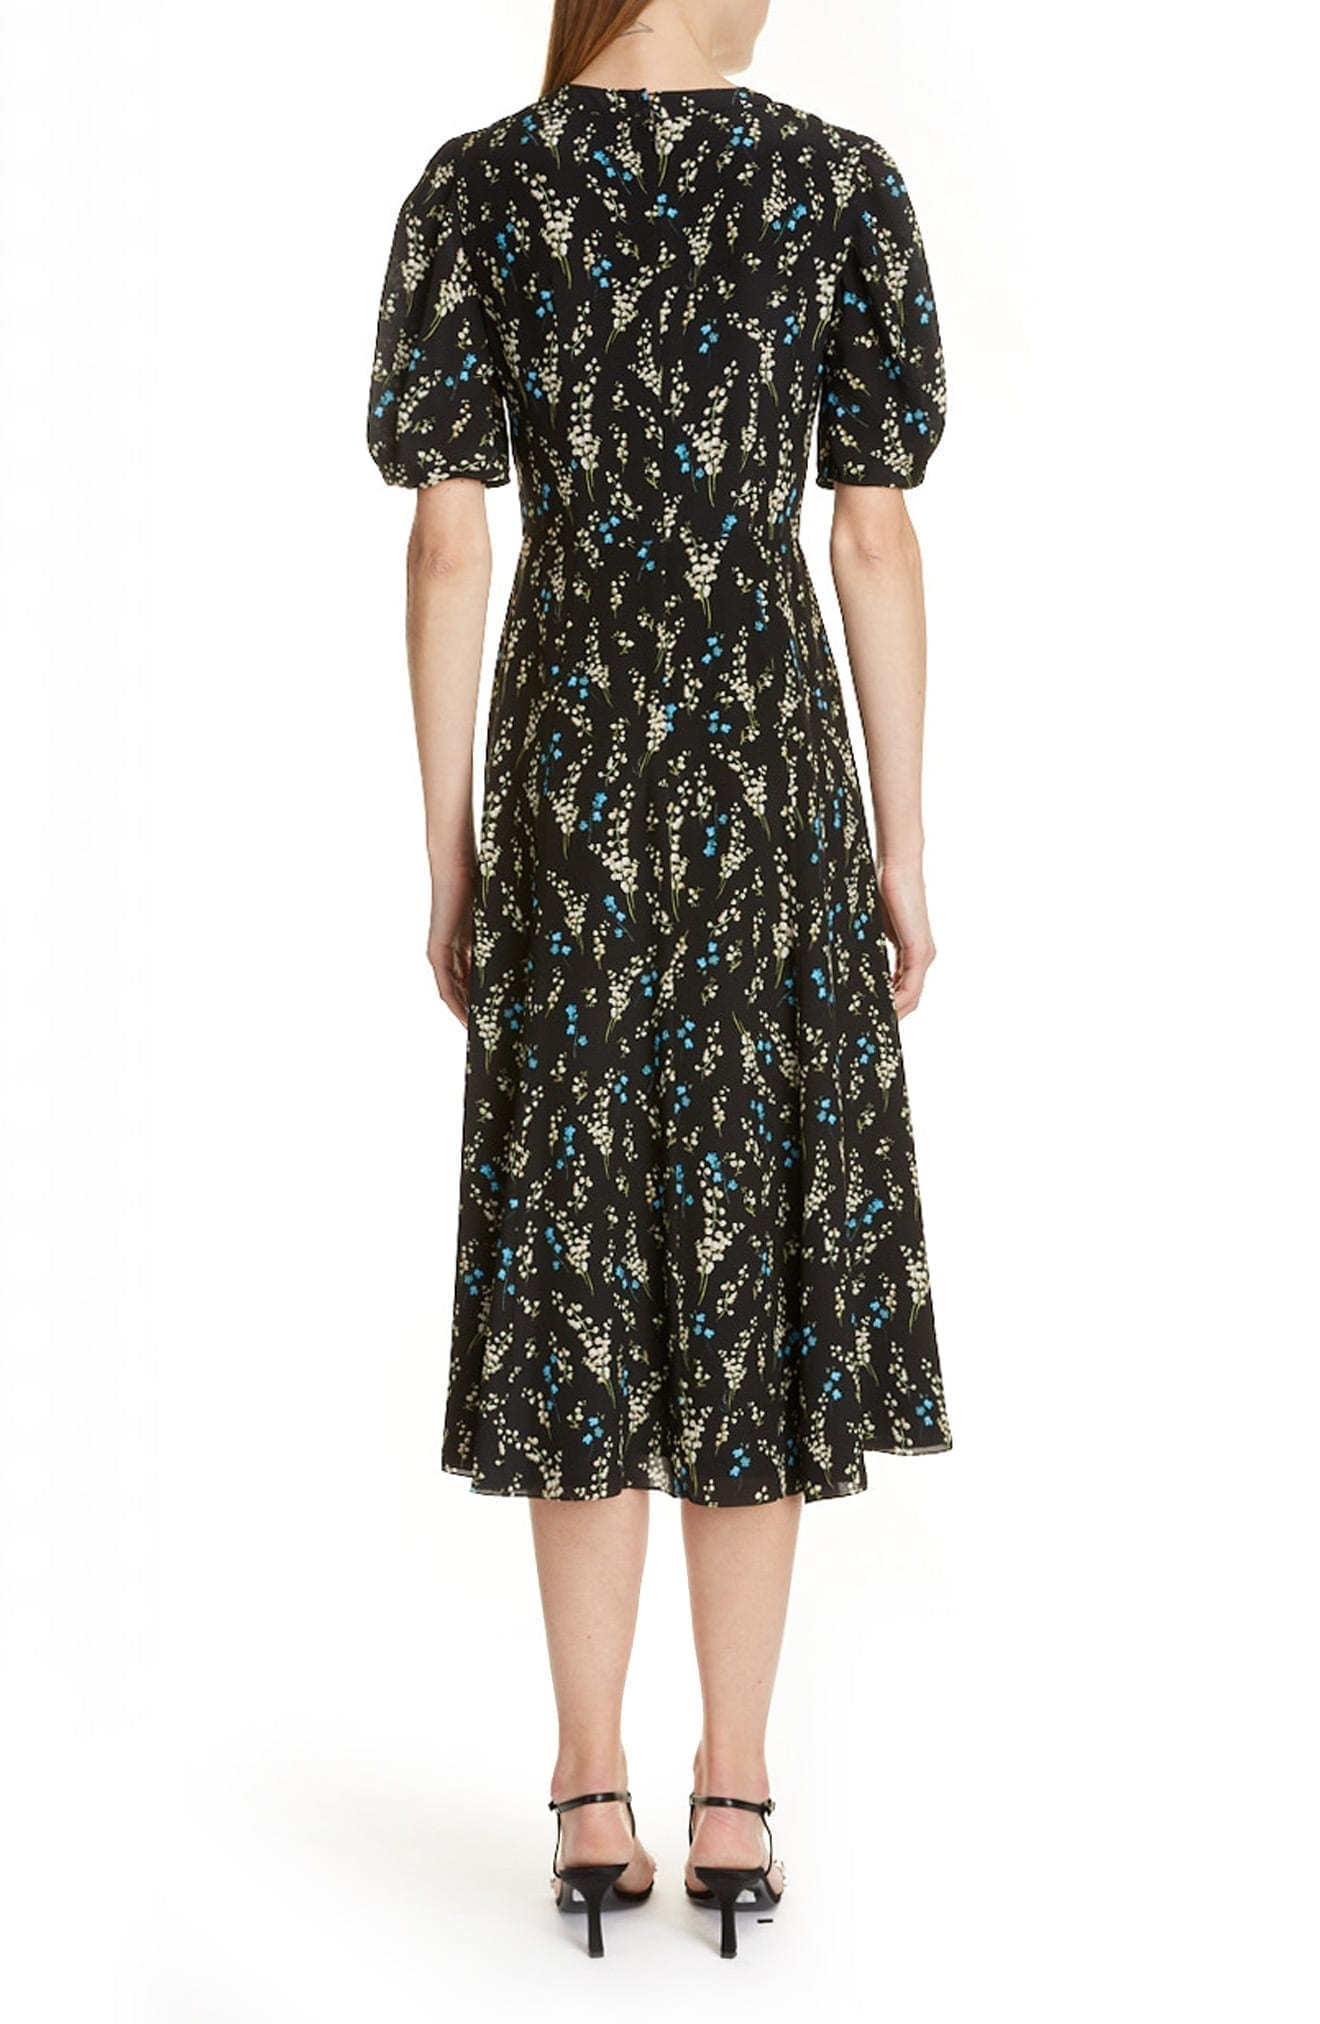 ERDEM Floral Print Silk Midi Dress